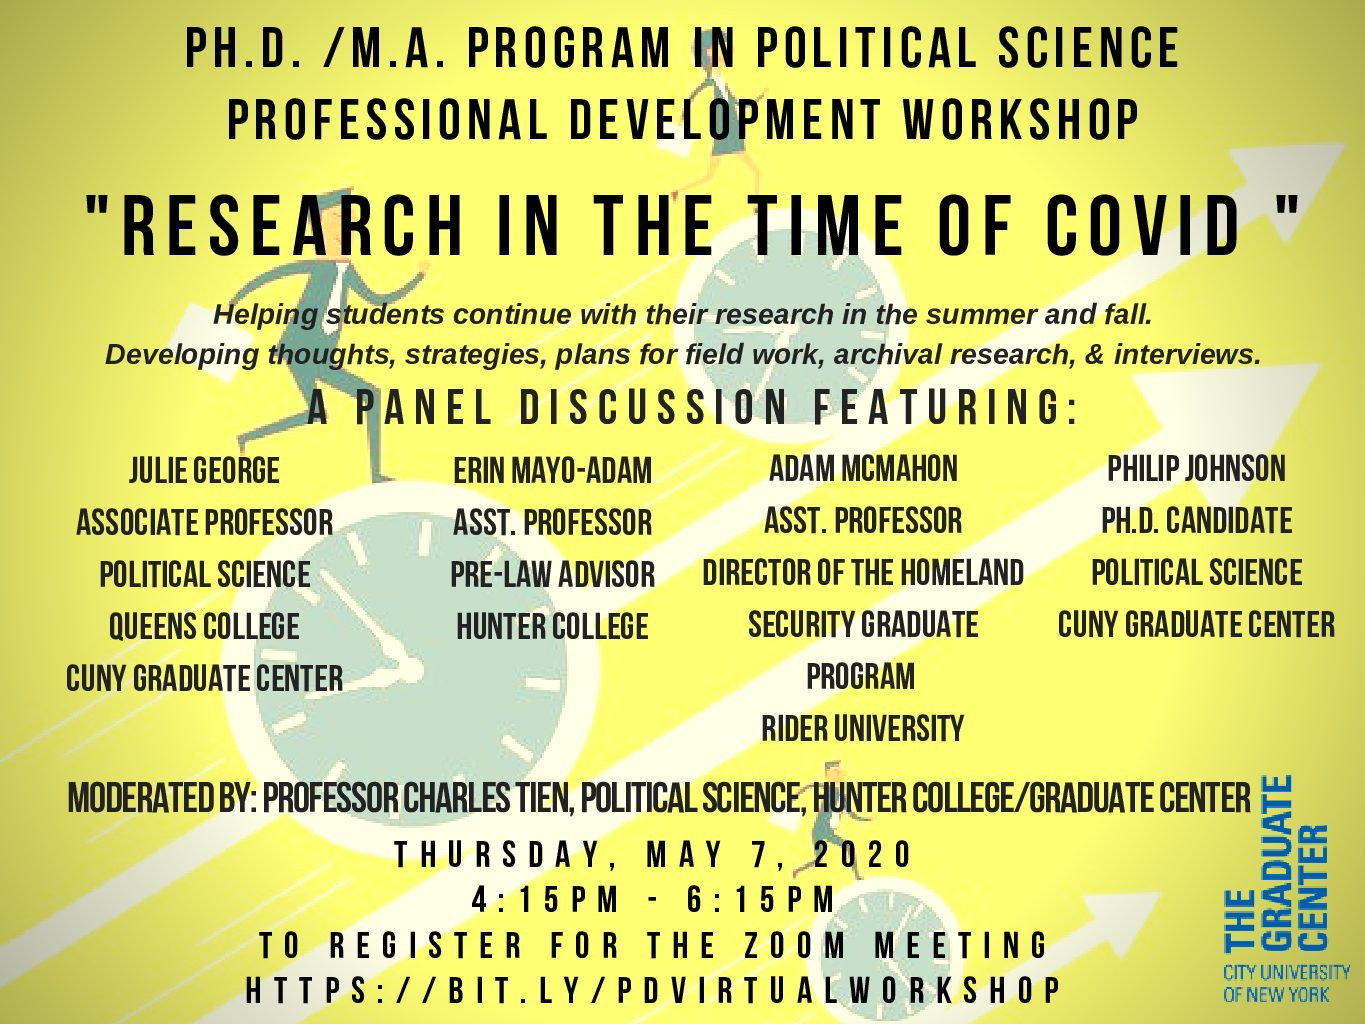 Professional Development Workshop: Research in the time of COVID